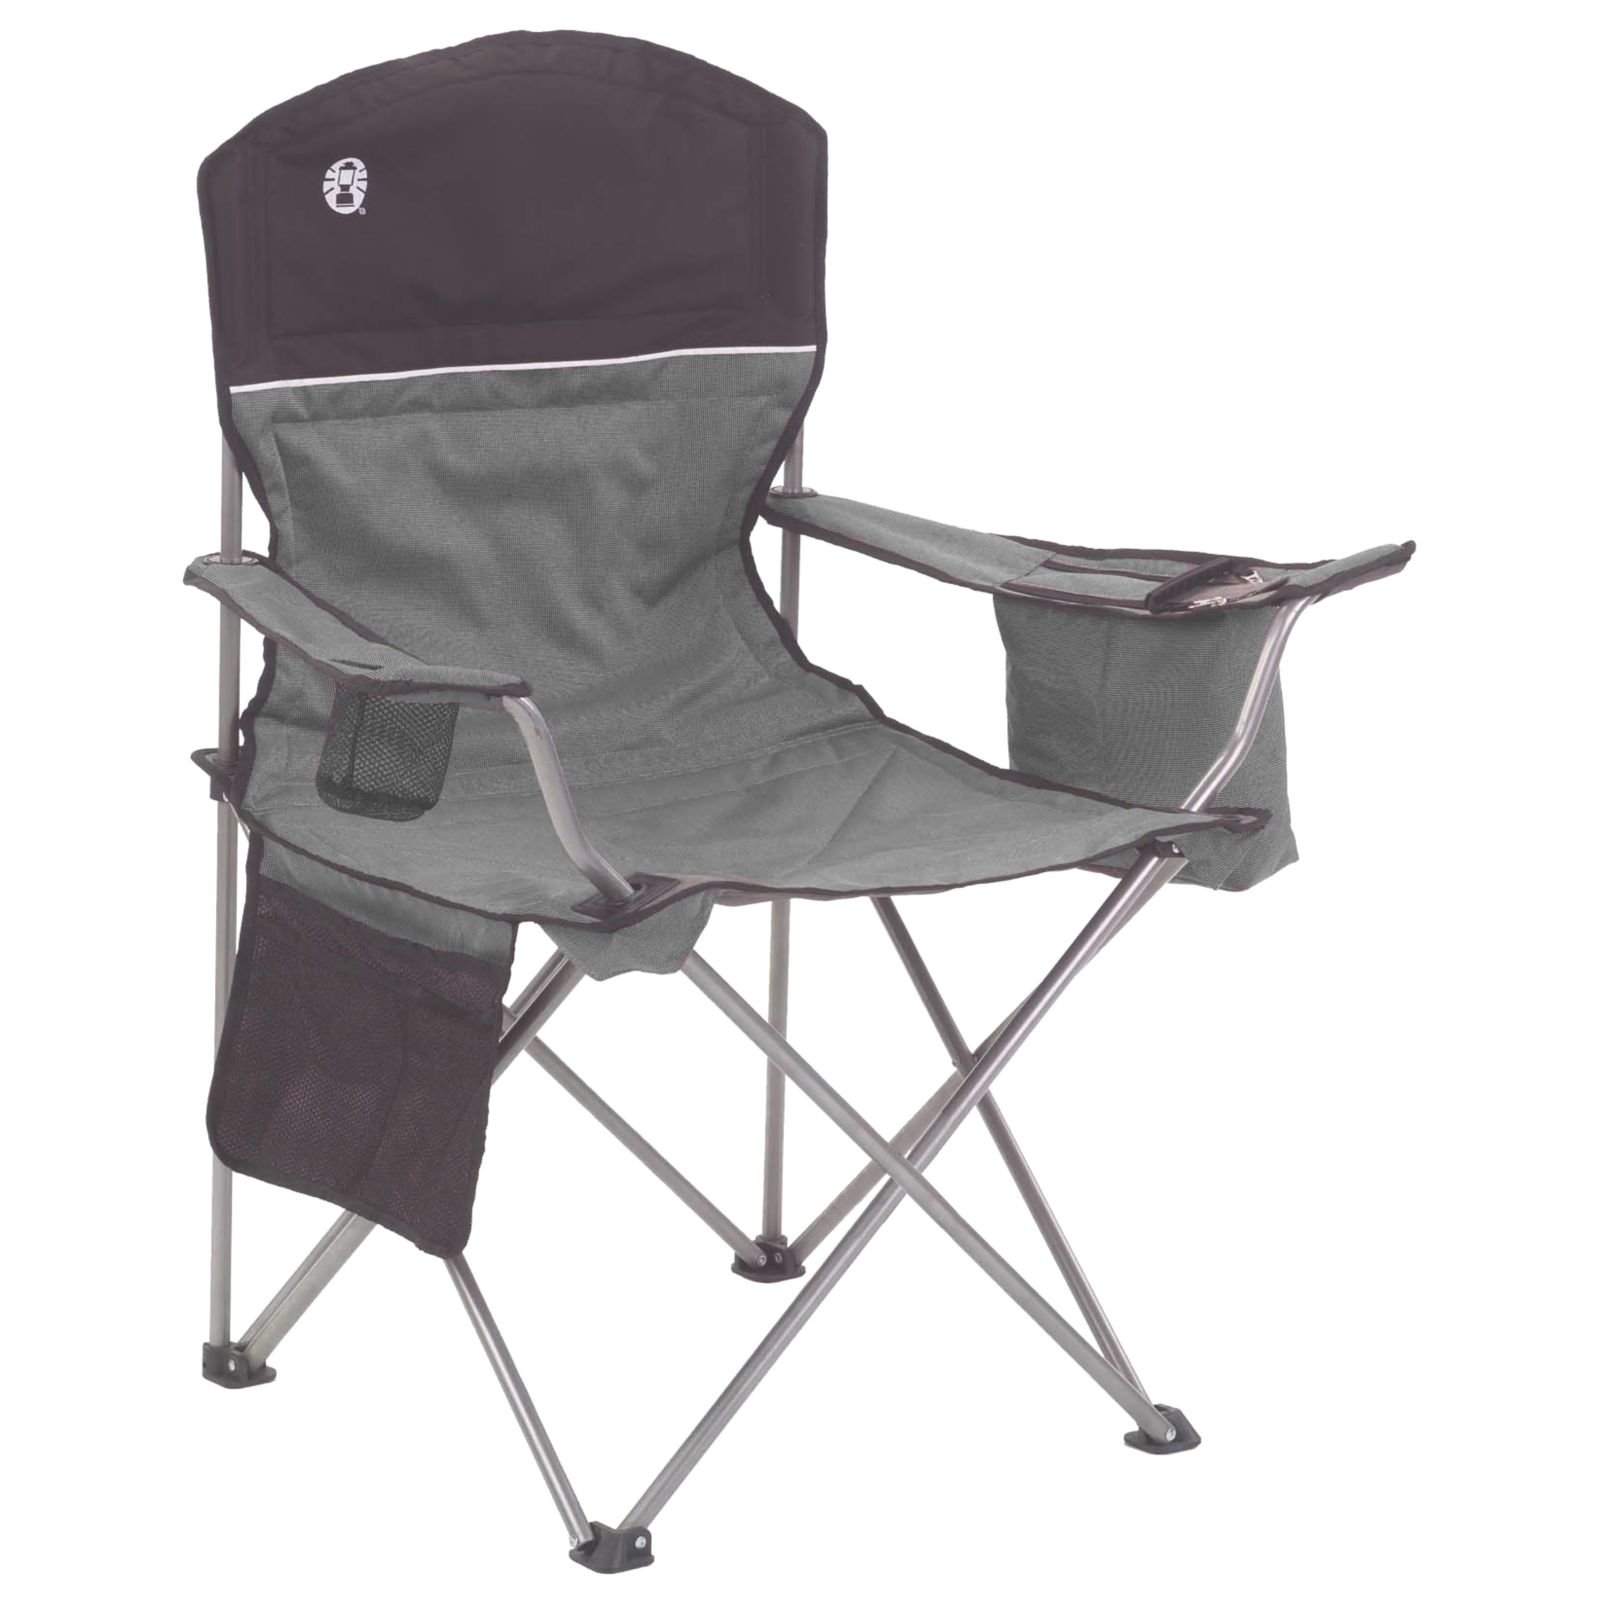 Coleman Camp Chair with 4-Can Cooler | Folding Beach Chair with Built In Drinks Cooler | Portable Quad Chair with Armrest Cooler for Tailgating, Camping, and Outdoors by Coleman